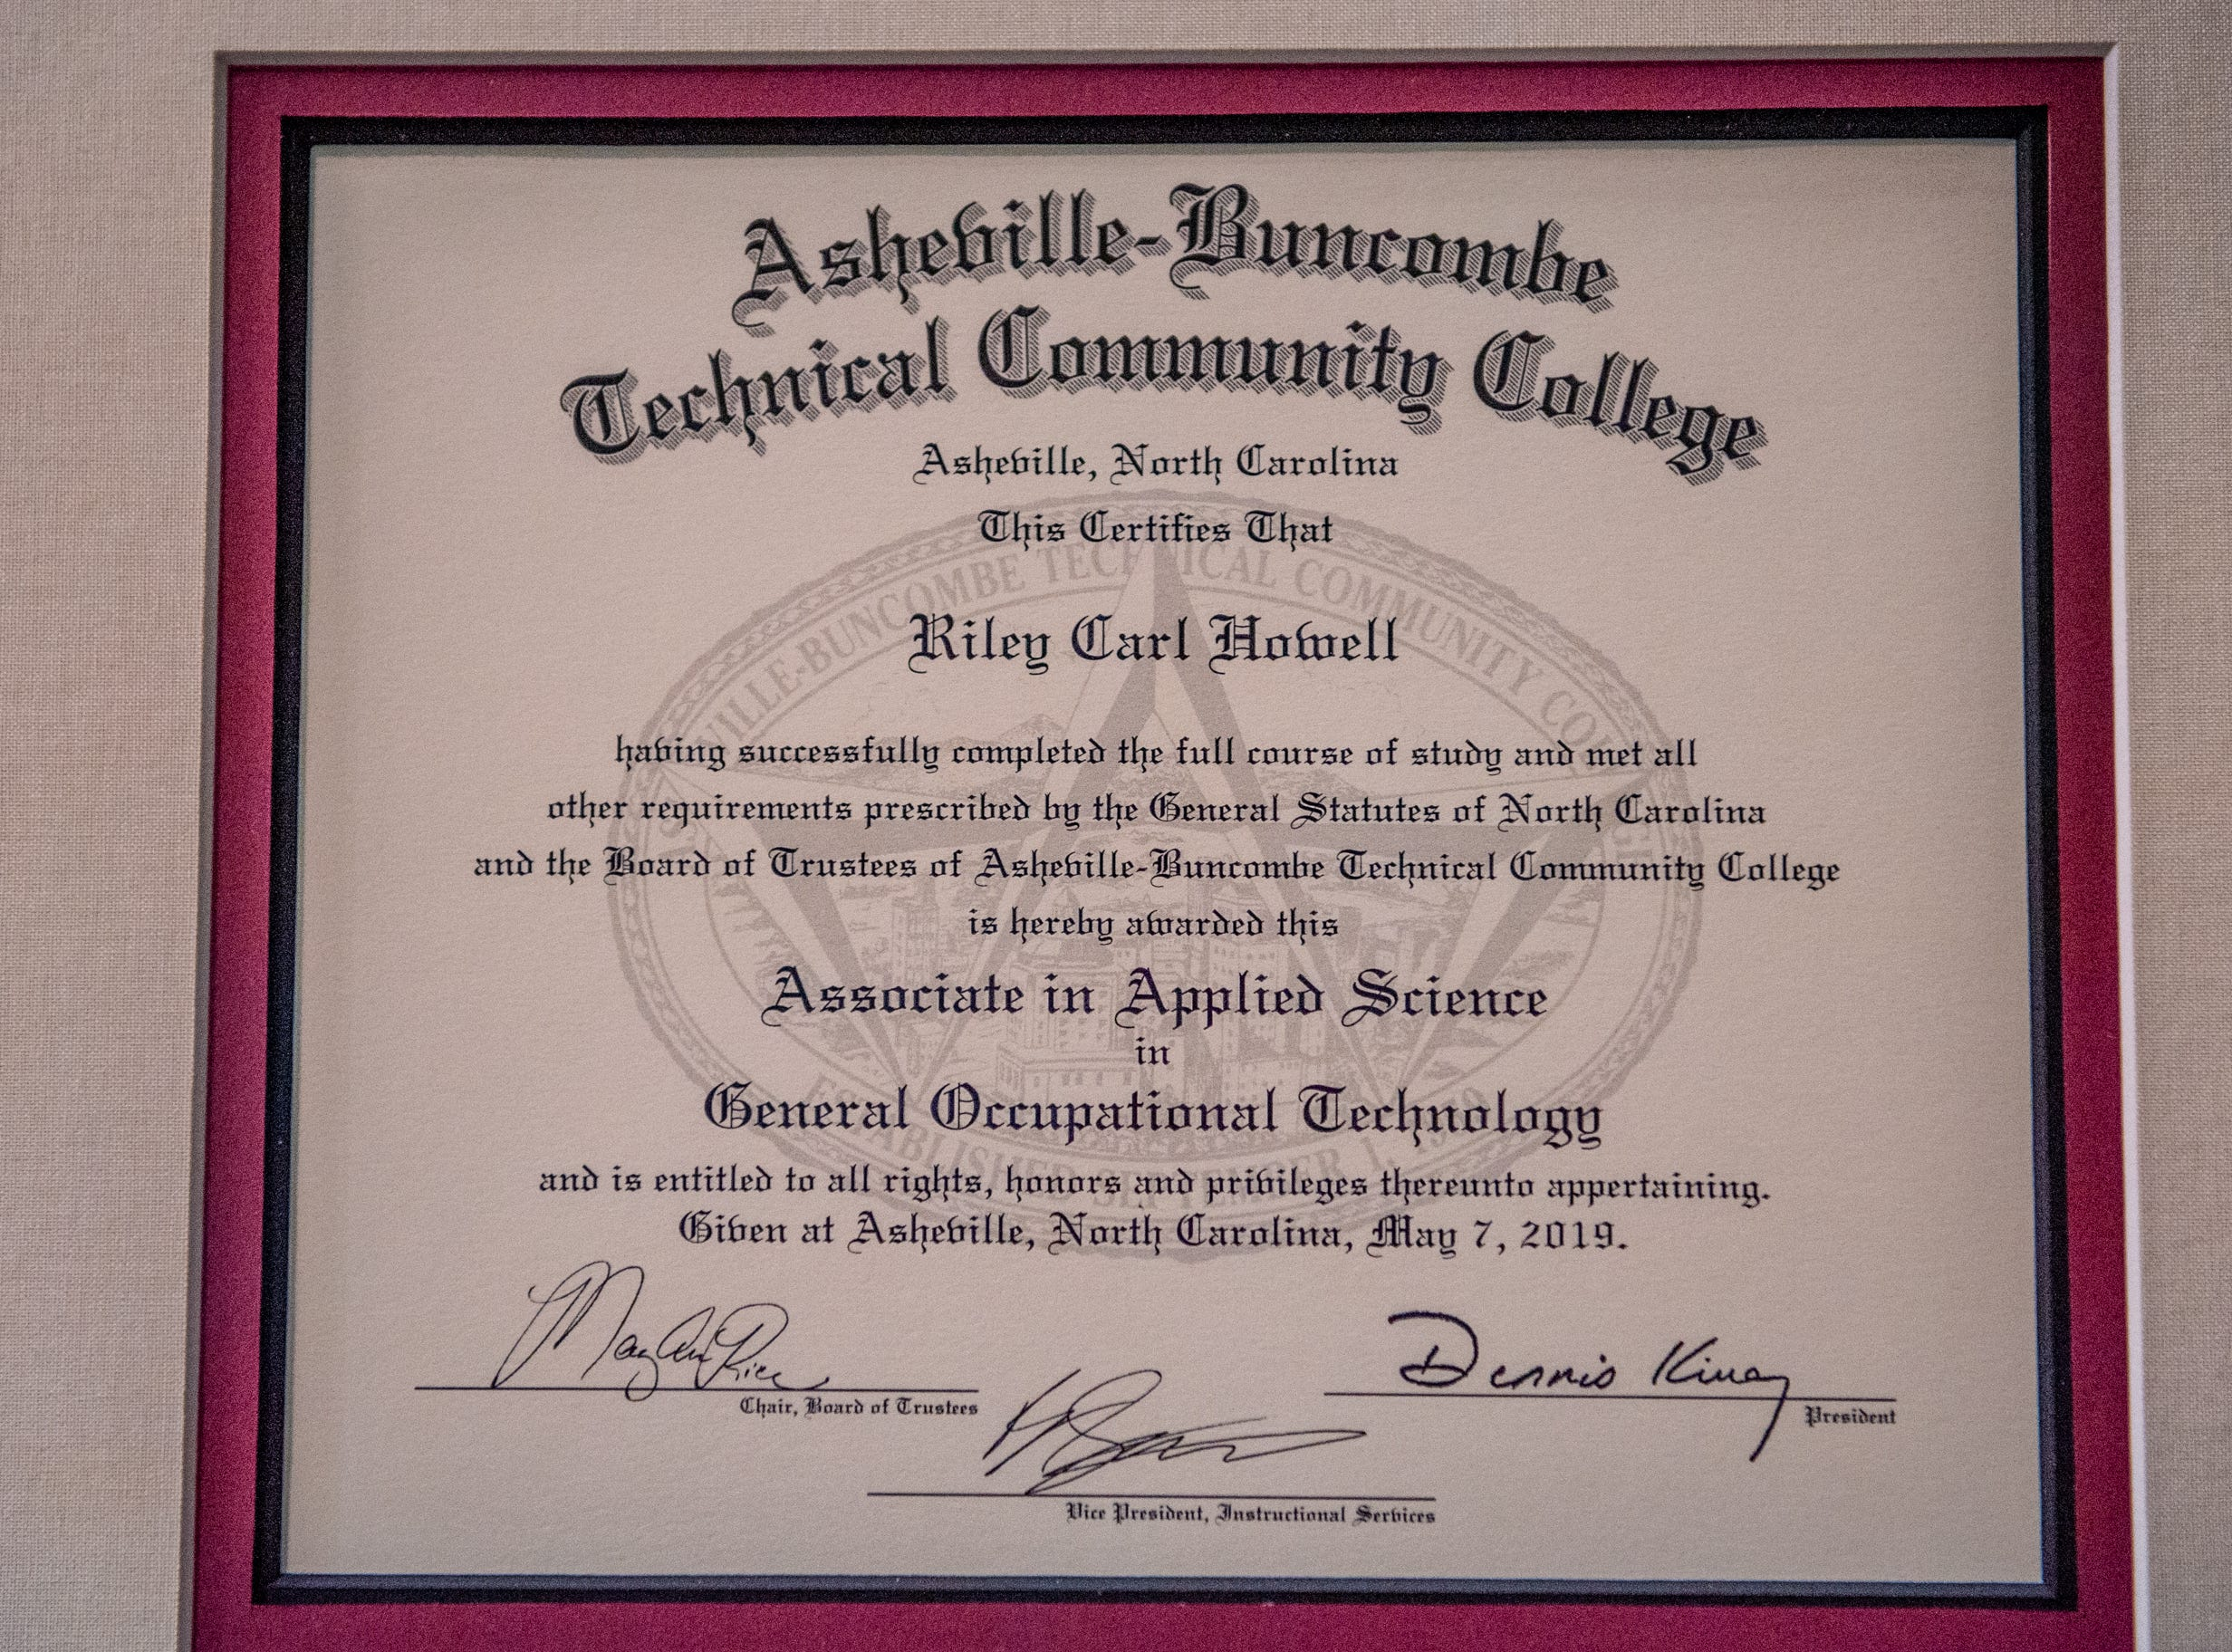 Asheville-Buncombe Technical Community College held its graduation ceremony on May 11, 2019